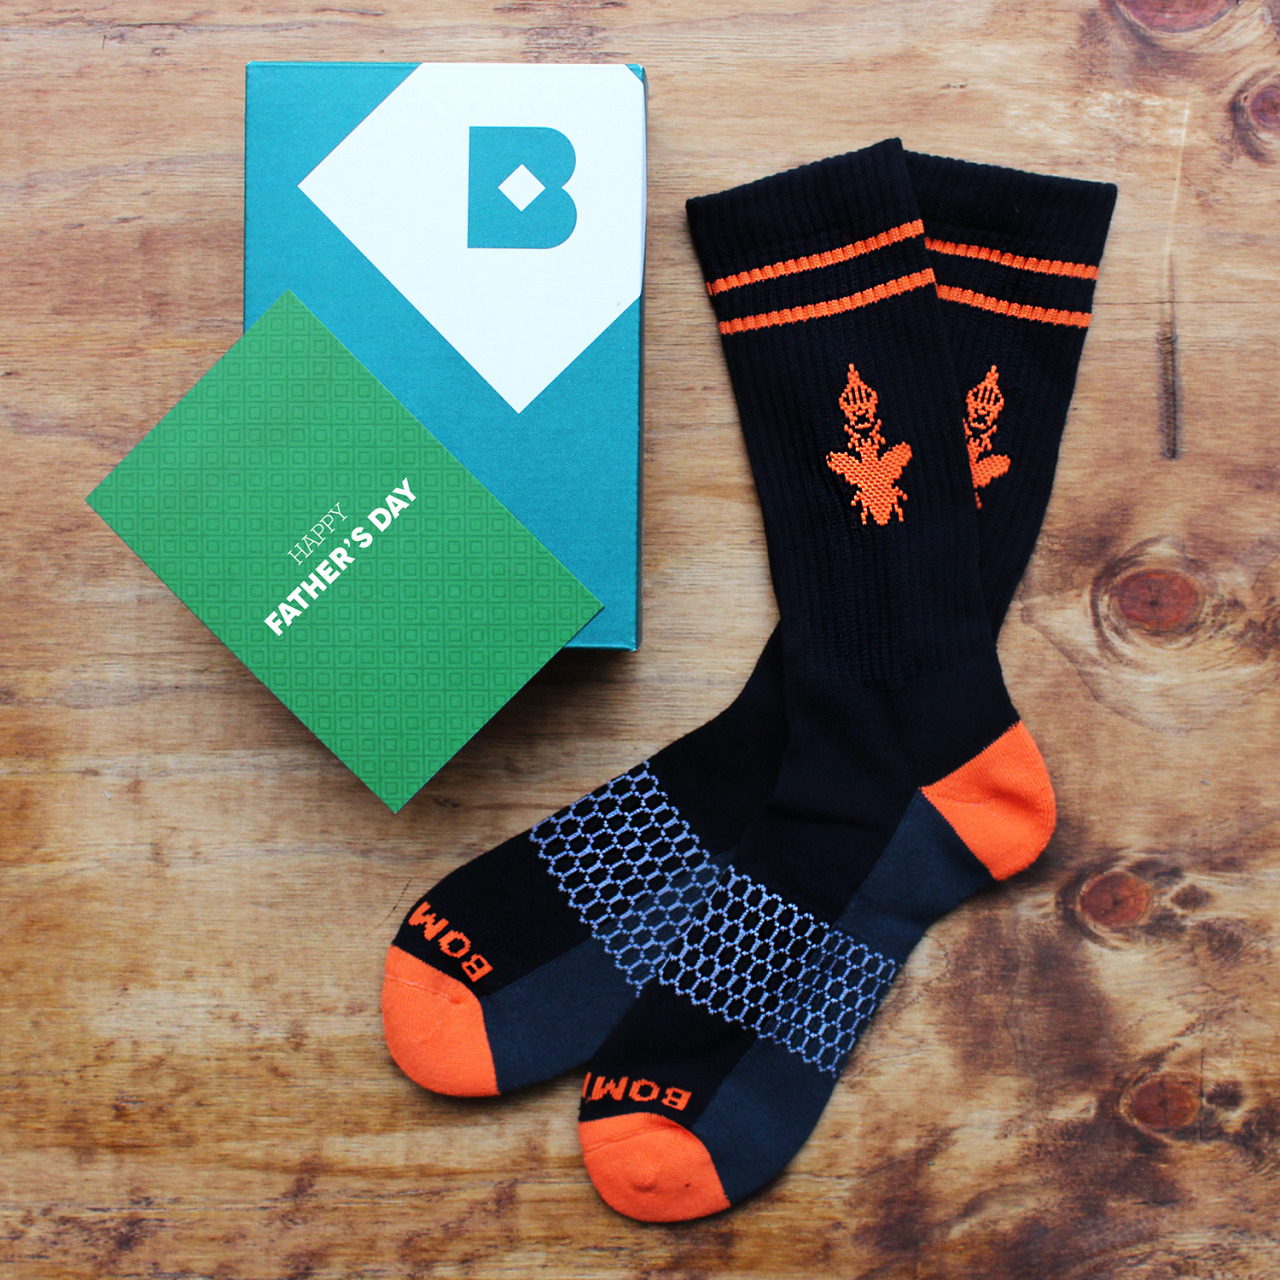 This Father's Day, switch it up and gift him a subscription to Birchbox Man! He'll be stylish and well-groomed all year. PLUS, while supplies last, you can add these stylish, über comfy Bombas socks to his order for FREE.  (NOTE: Today, June 4, is the LAST DAY to gift a subscription in time for Father's Day delivery!)